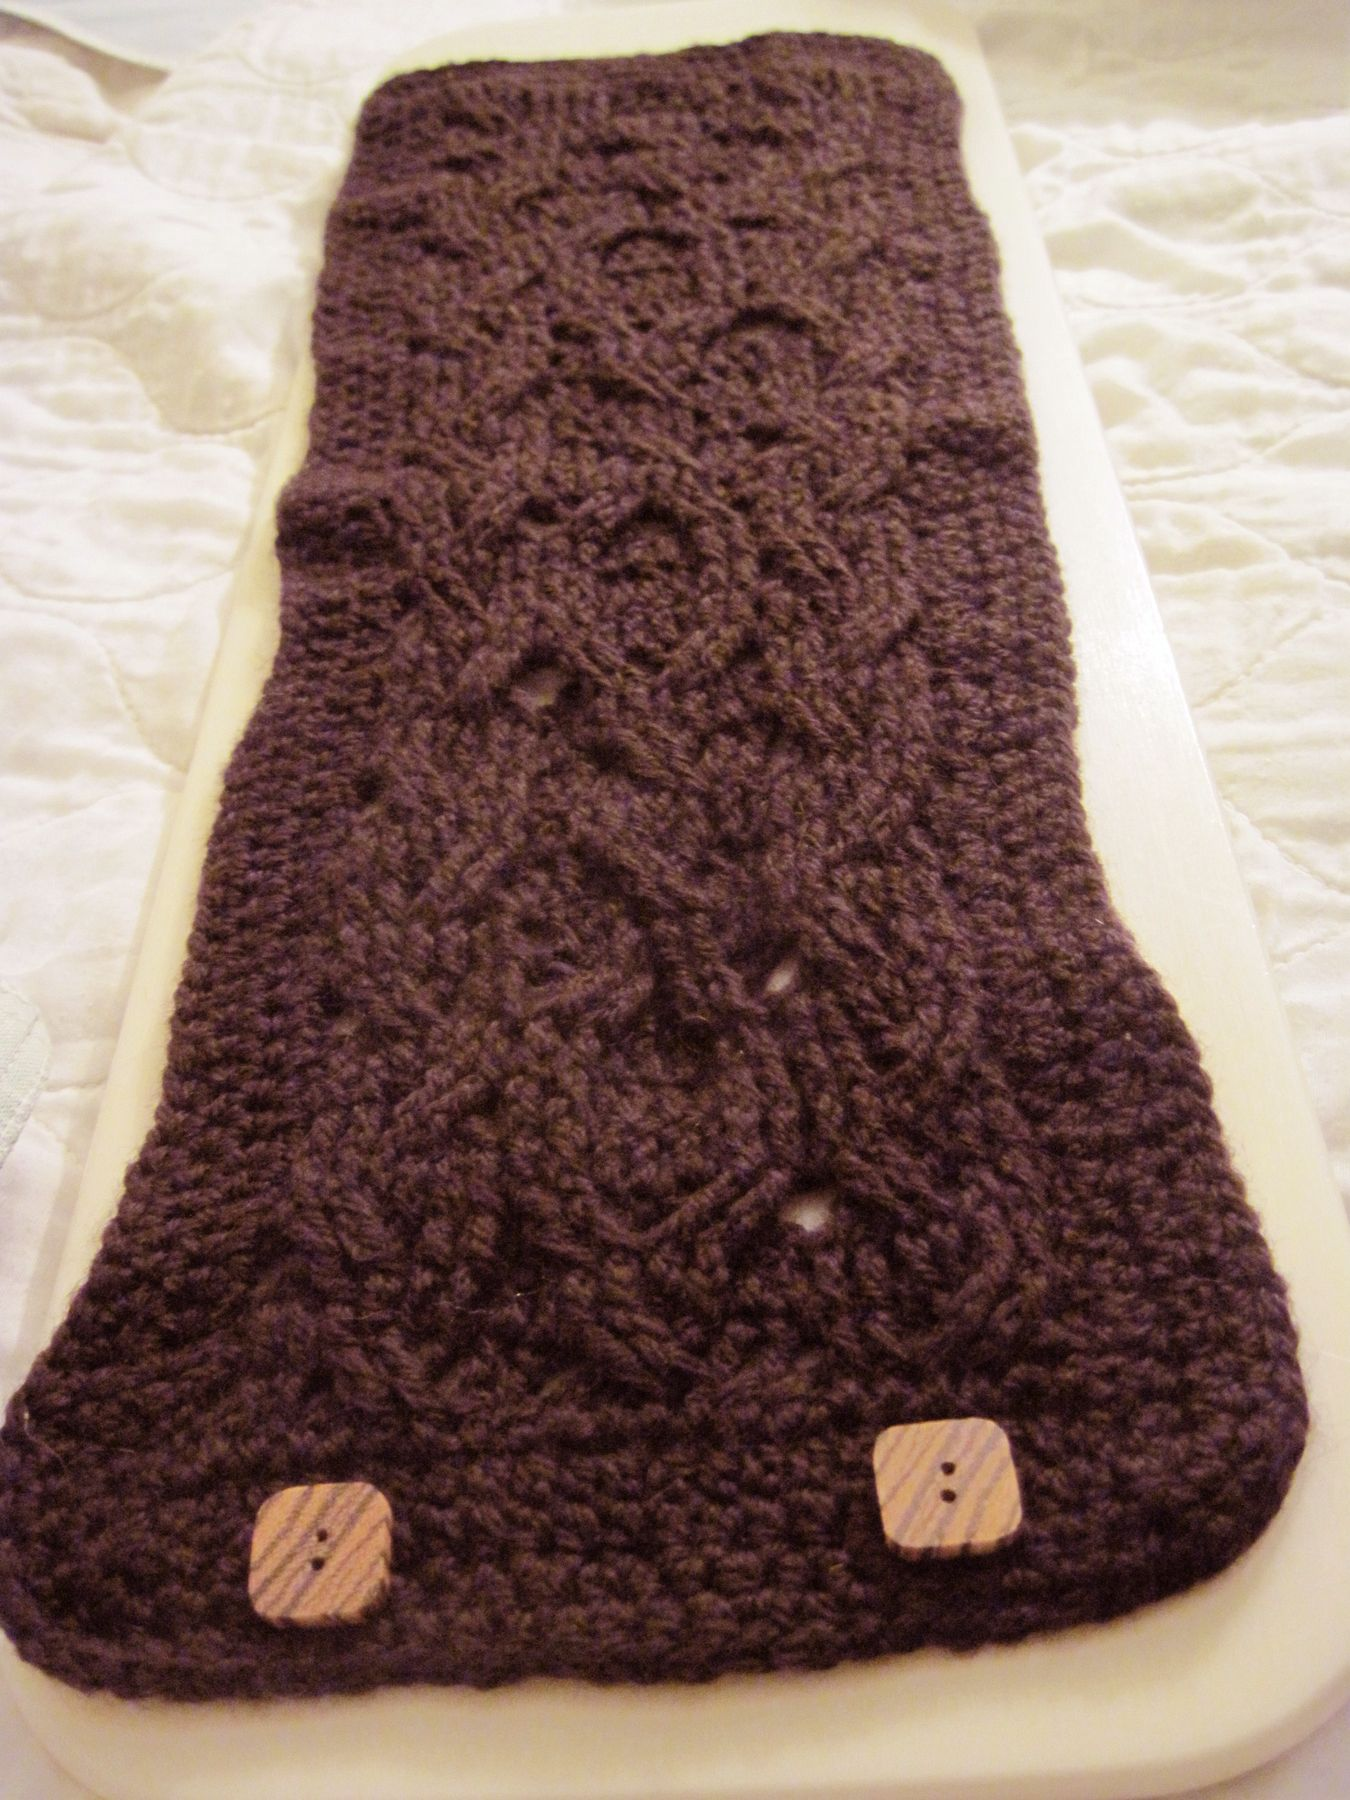 Buttoned Cowl Knitting Pattern : Buttoned Cabled Crochet Cowl - Knitting Patterns and Crochet Patterns from Kn...